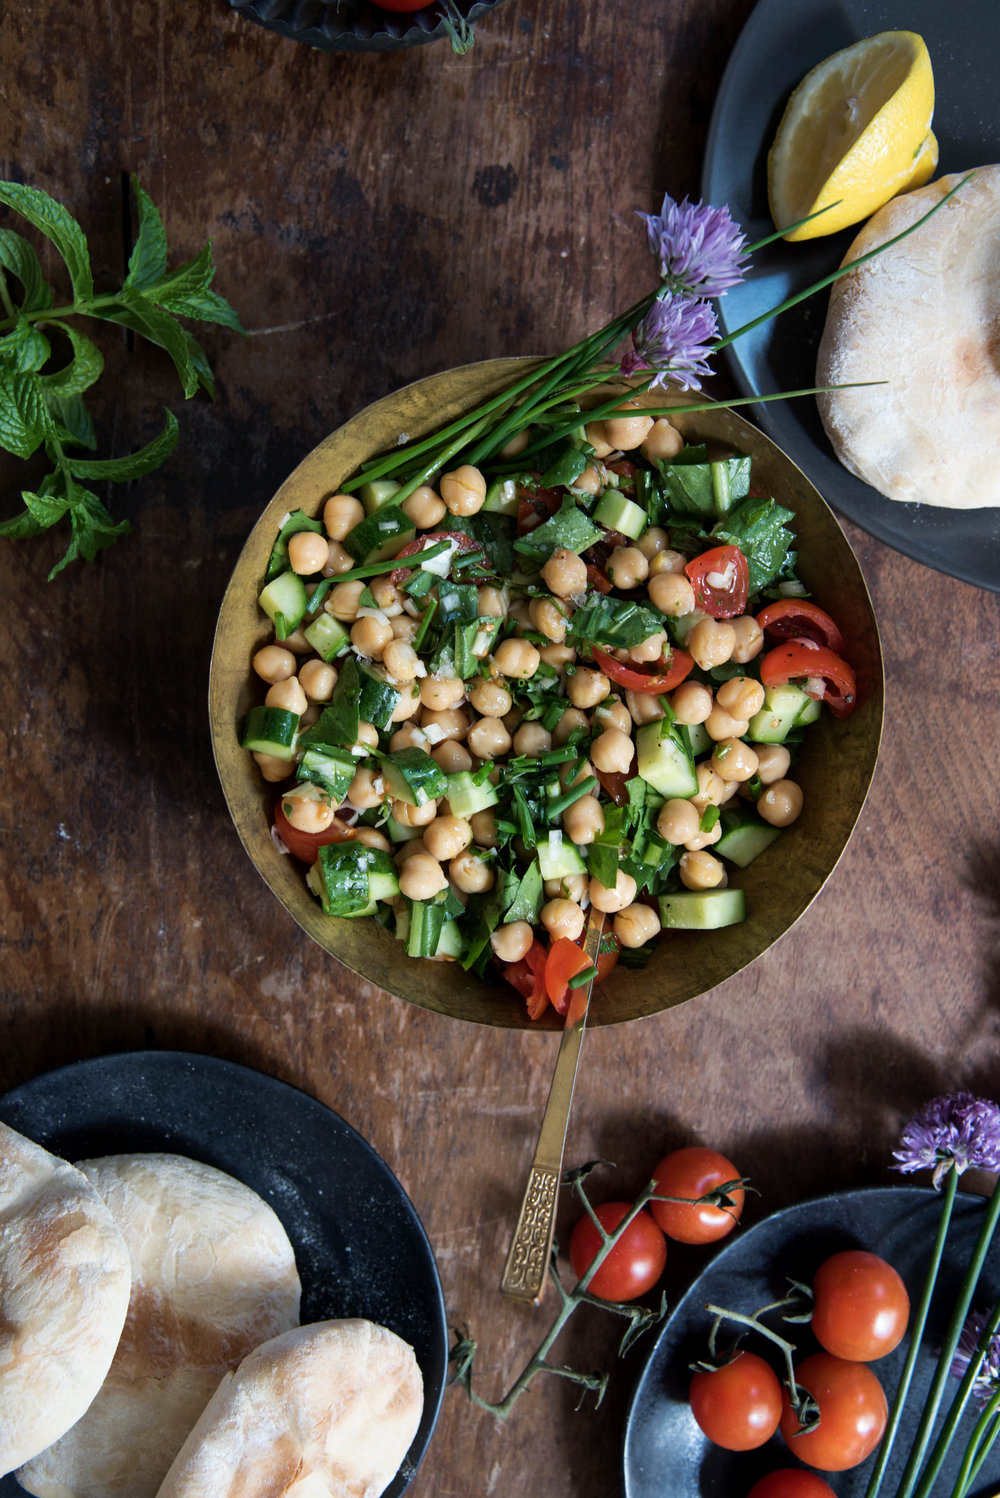 ROSE & IVY Journal Middle Eastern Spread Chickpea Salad from The Palomar Cookbook